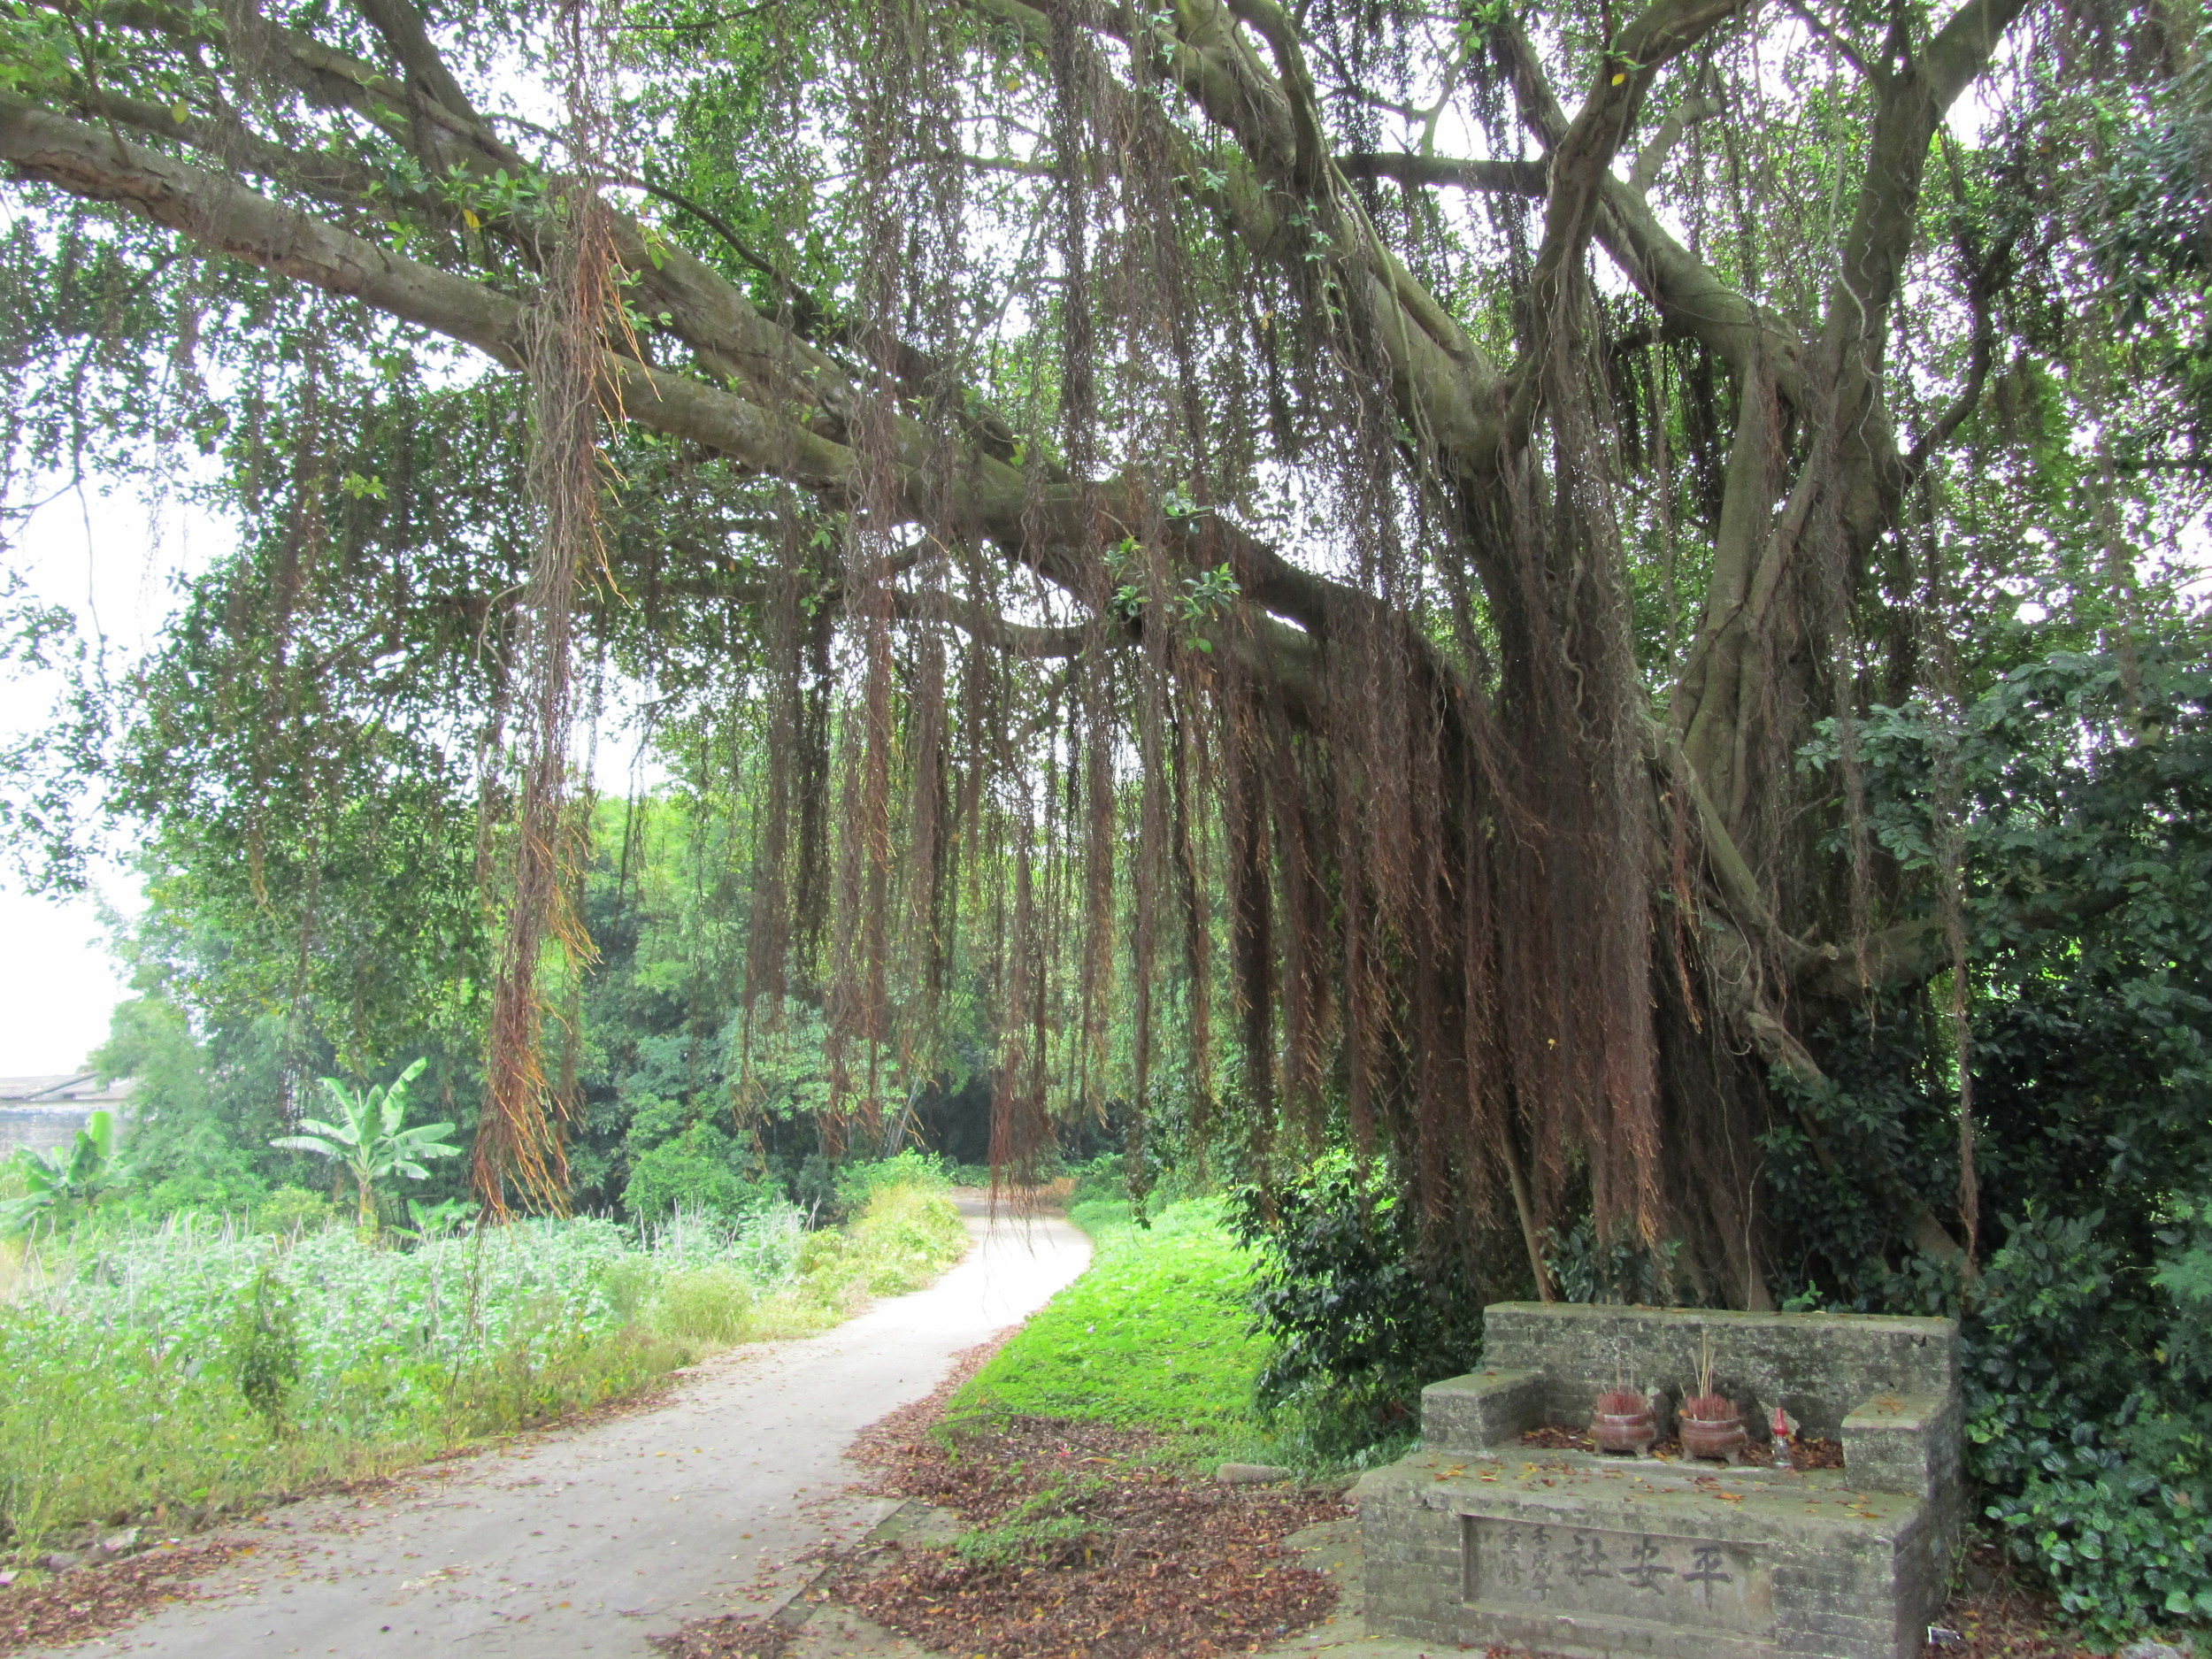 The hundred year old banyan tree at the entrance of the village.